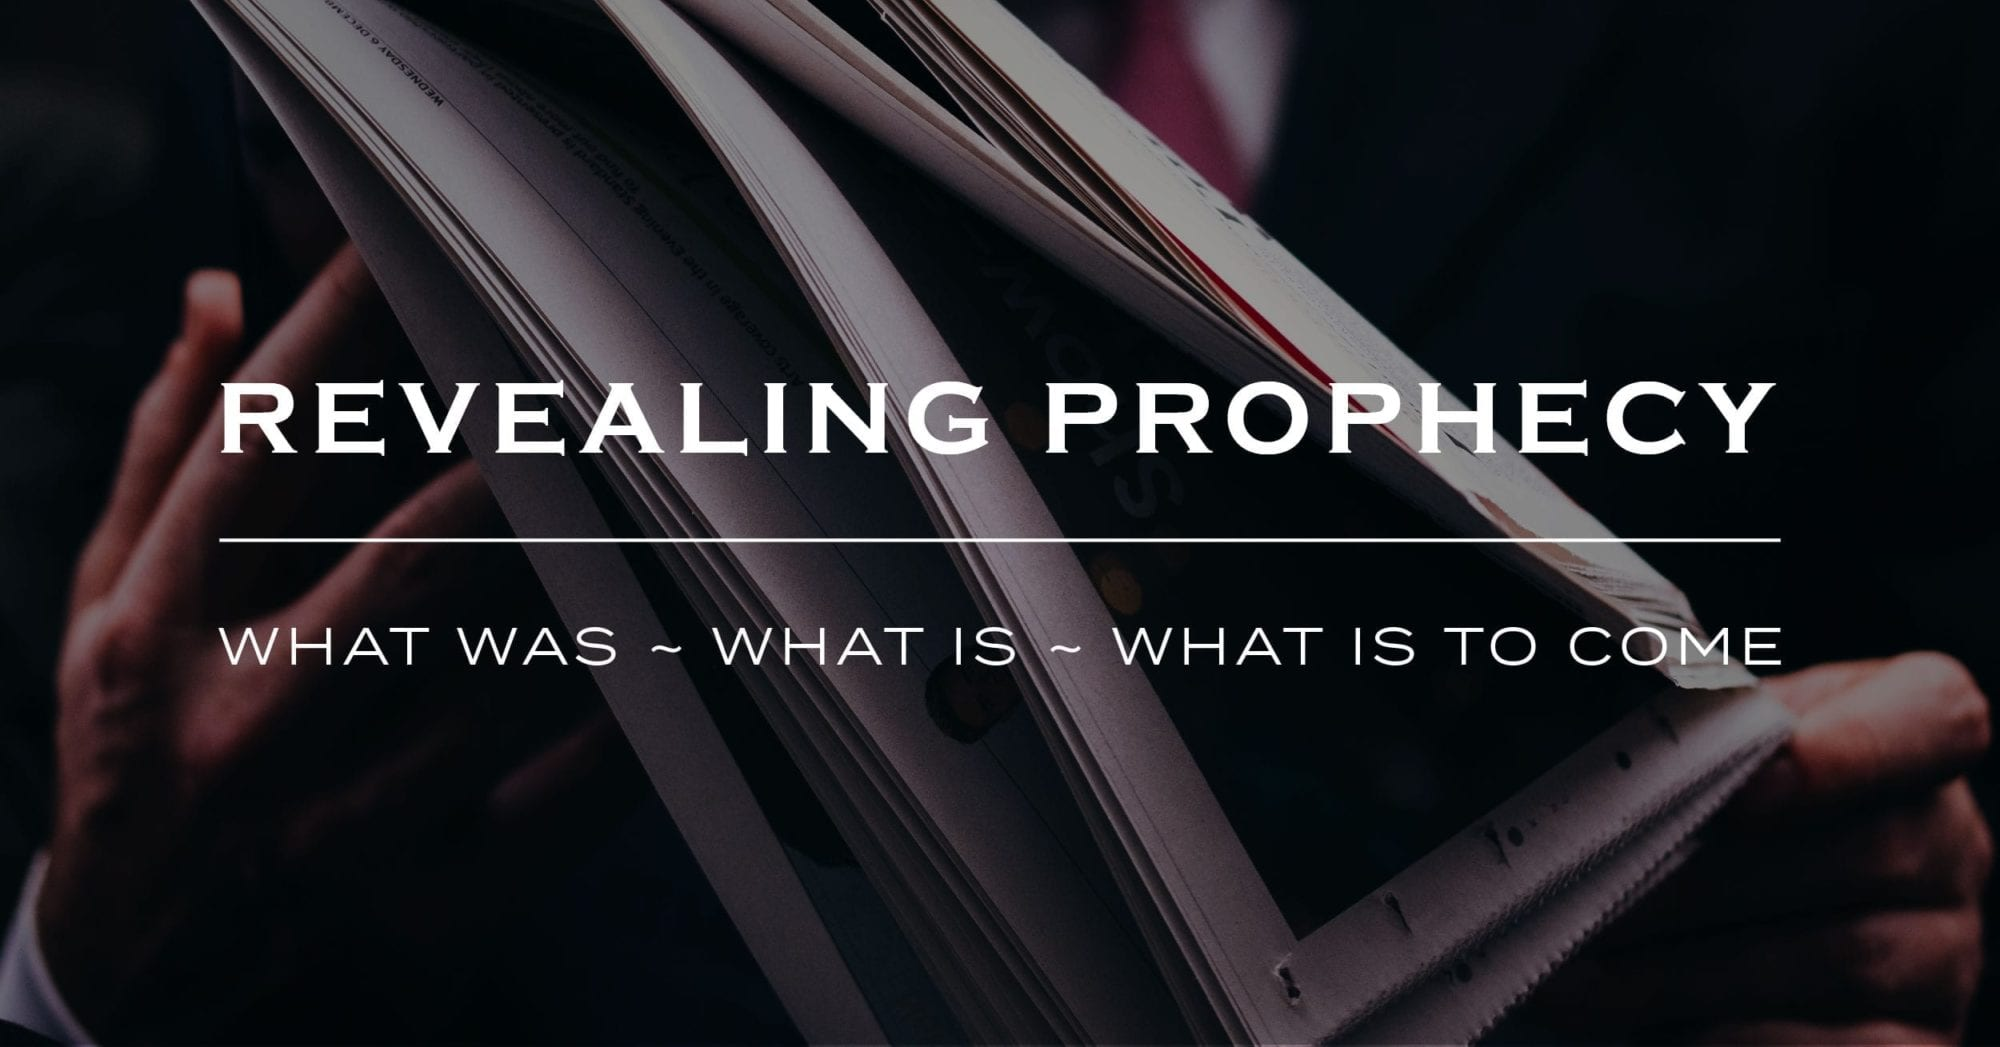 Revealing Prophecy - March 11 2019